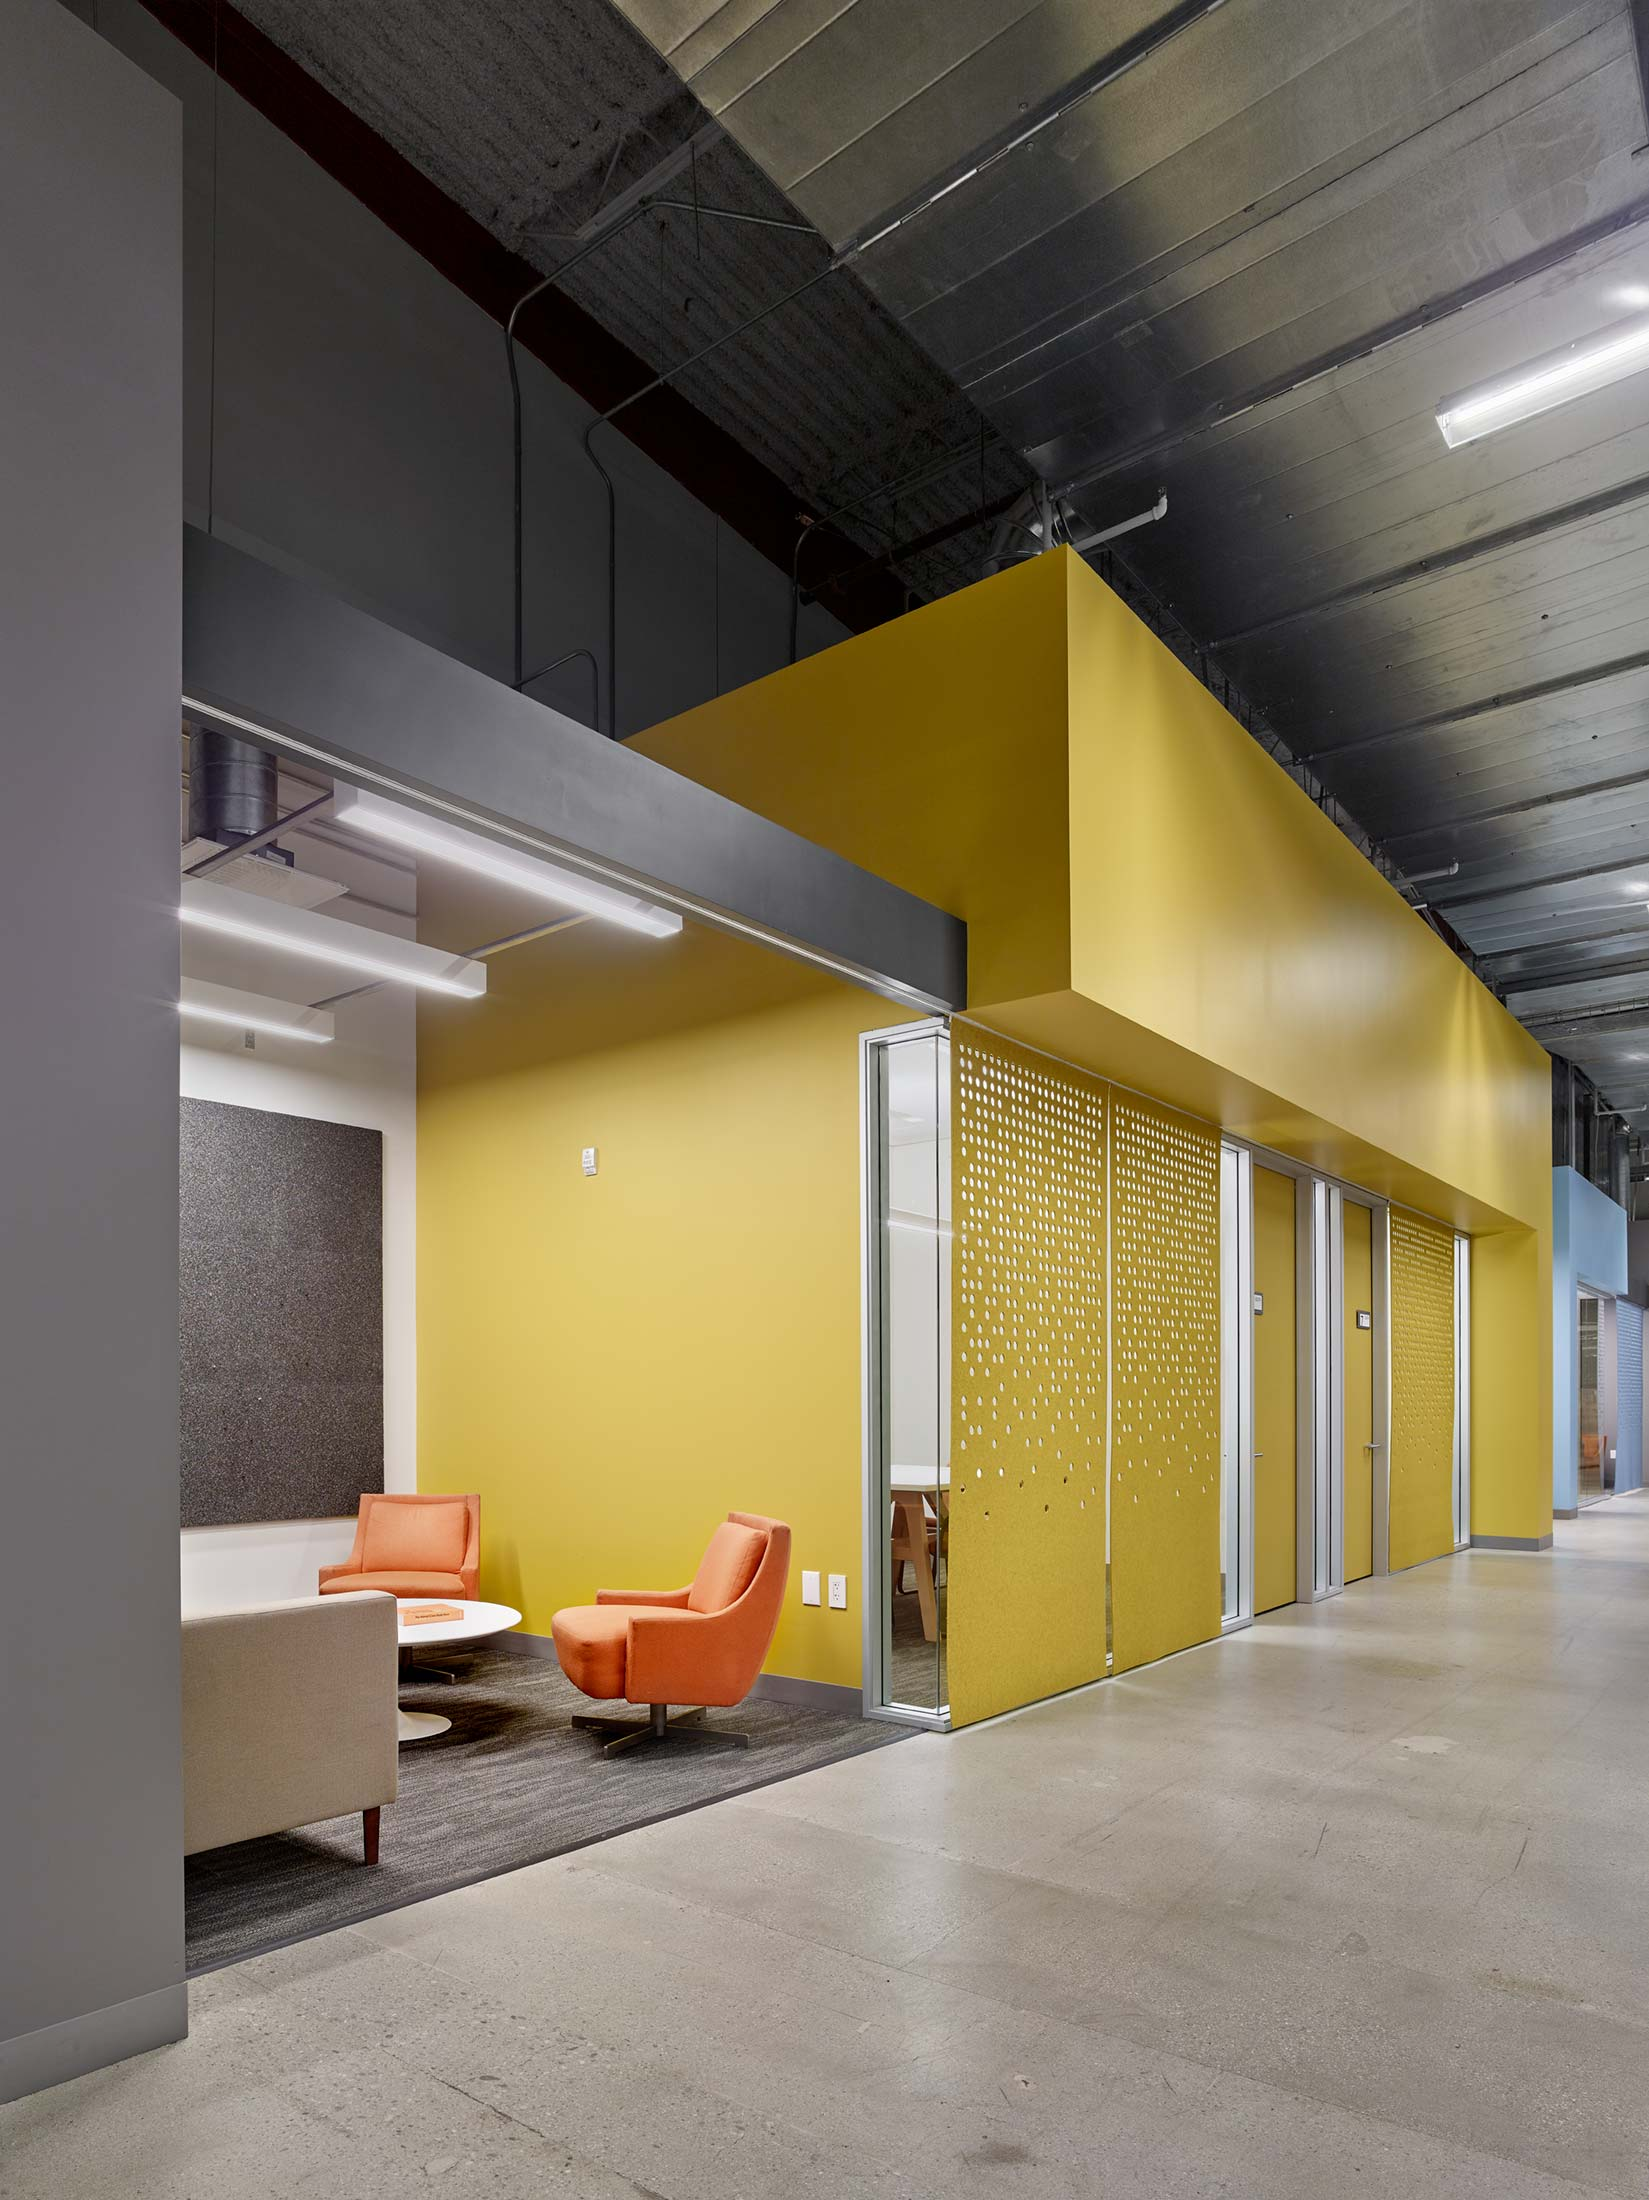 modern-architecture-commercial-interior-adaptive-reuse-workspace-california-shubindonaldson-team-one-usa-05